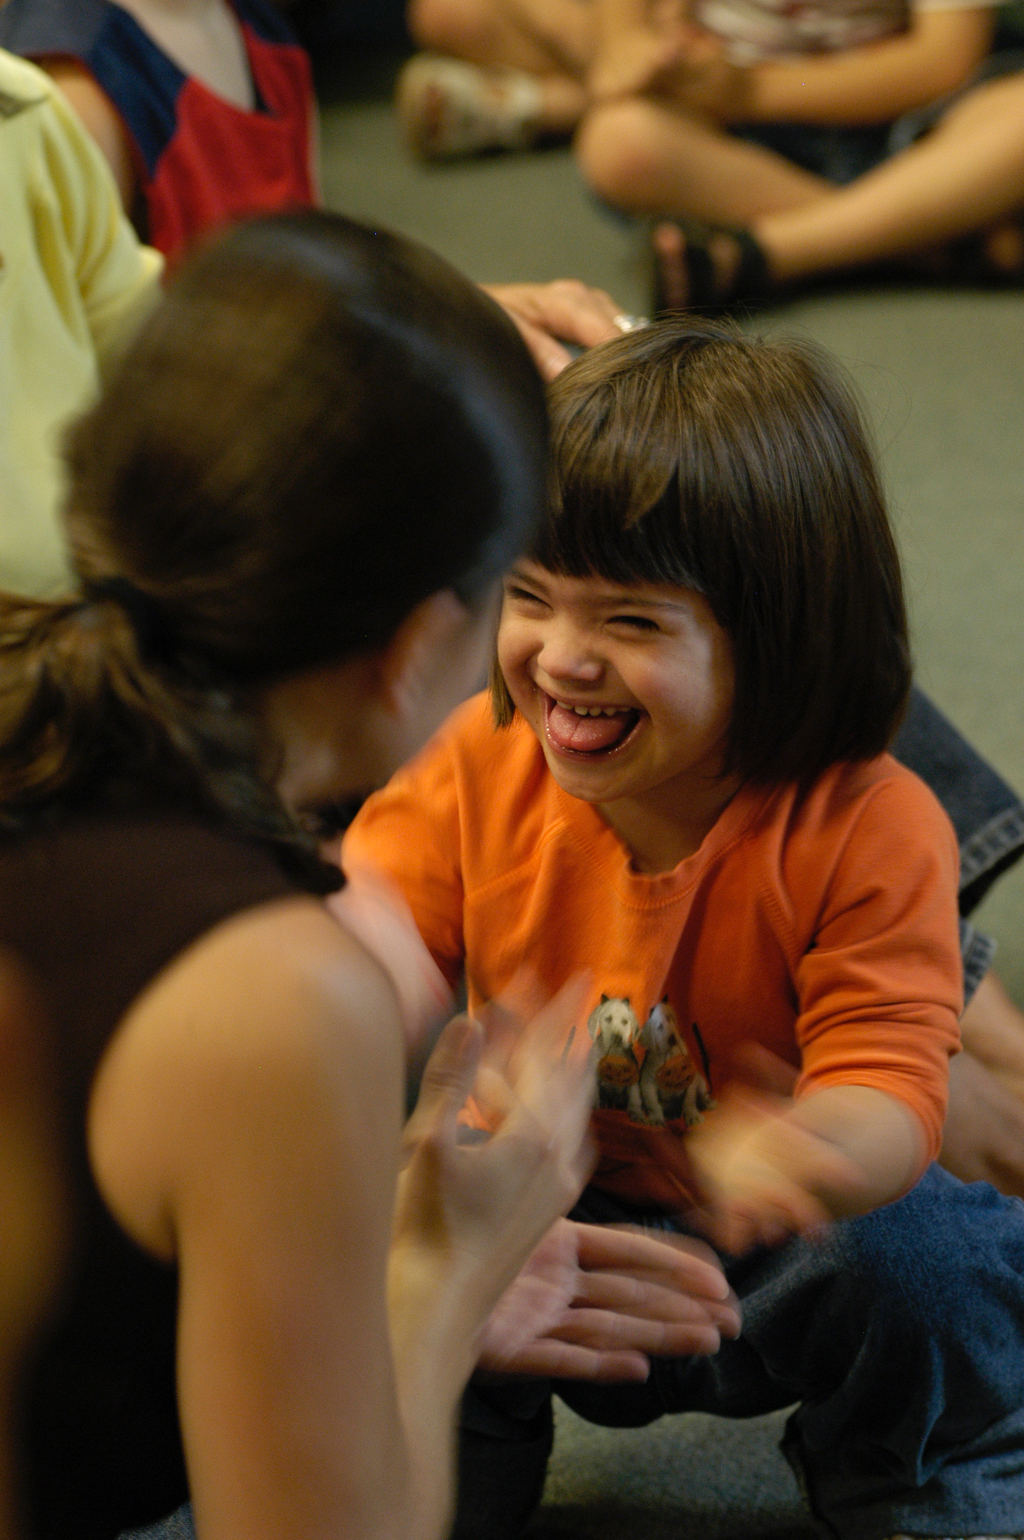 Kindergarten student with down's syndrome smiles at an student teacher in a classroom